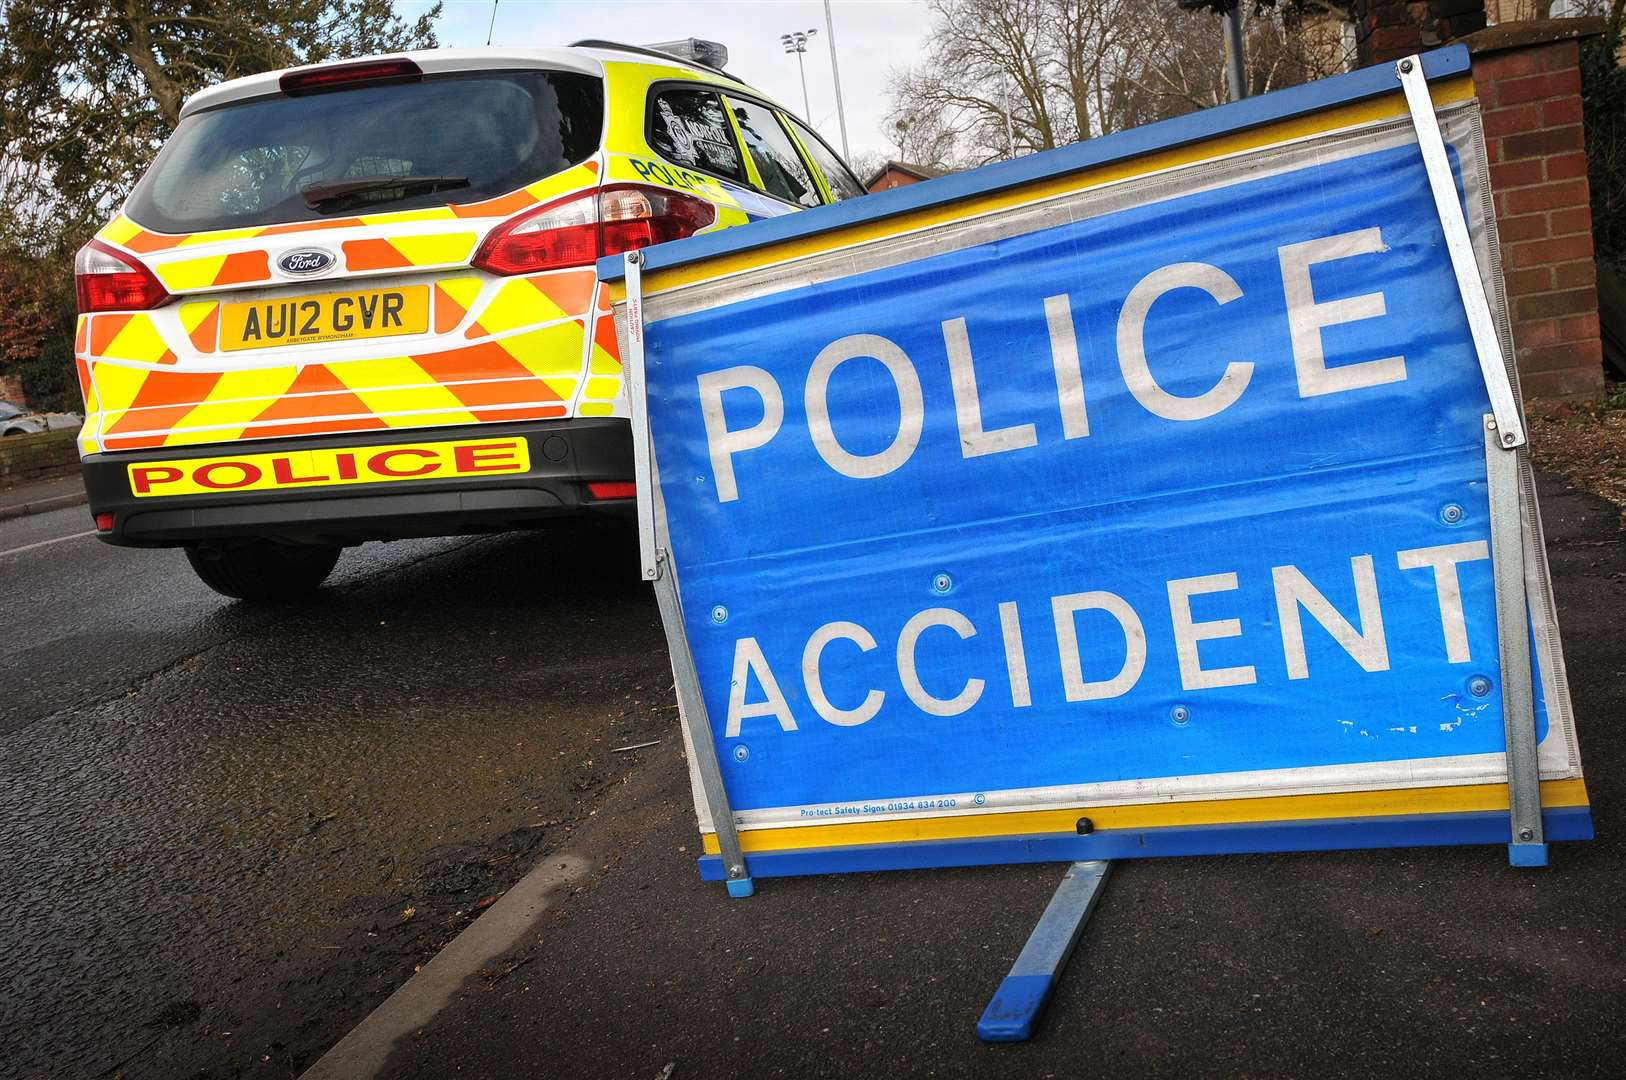 Police on the scene of an RTC - Norfolk Police accident sign. (2947411)